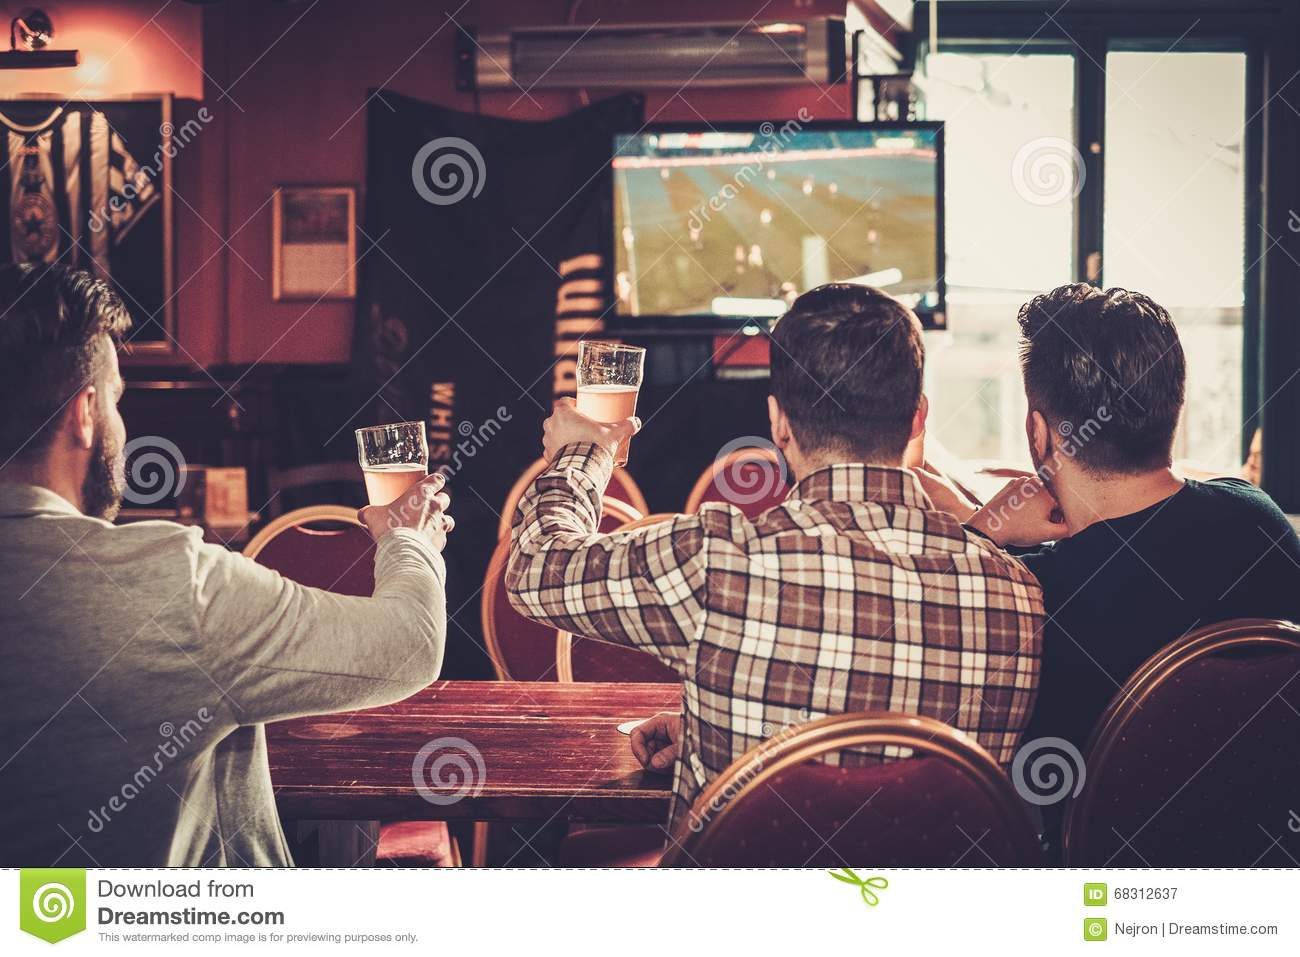 Old friends having fun watching a football game on TV and drinking draft beer at bar counter in pub.